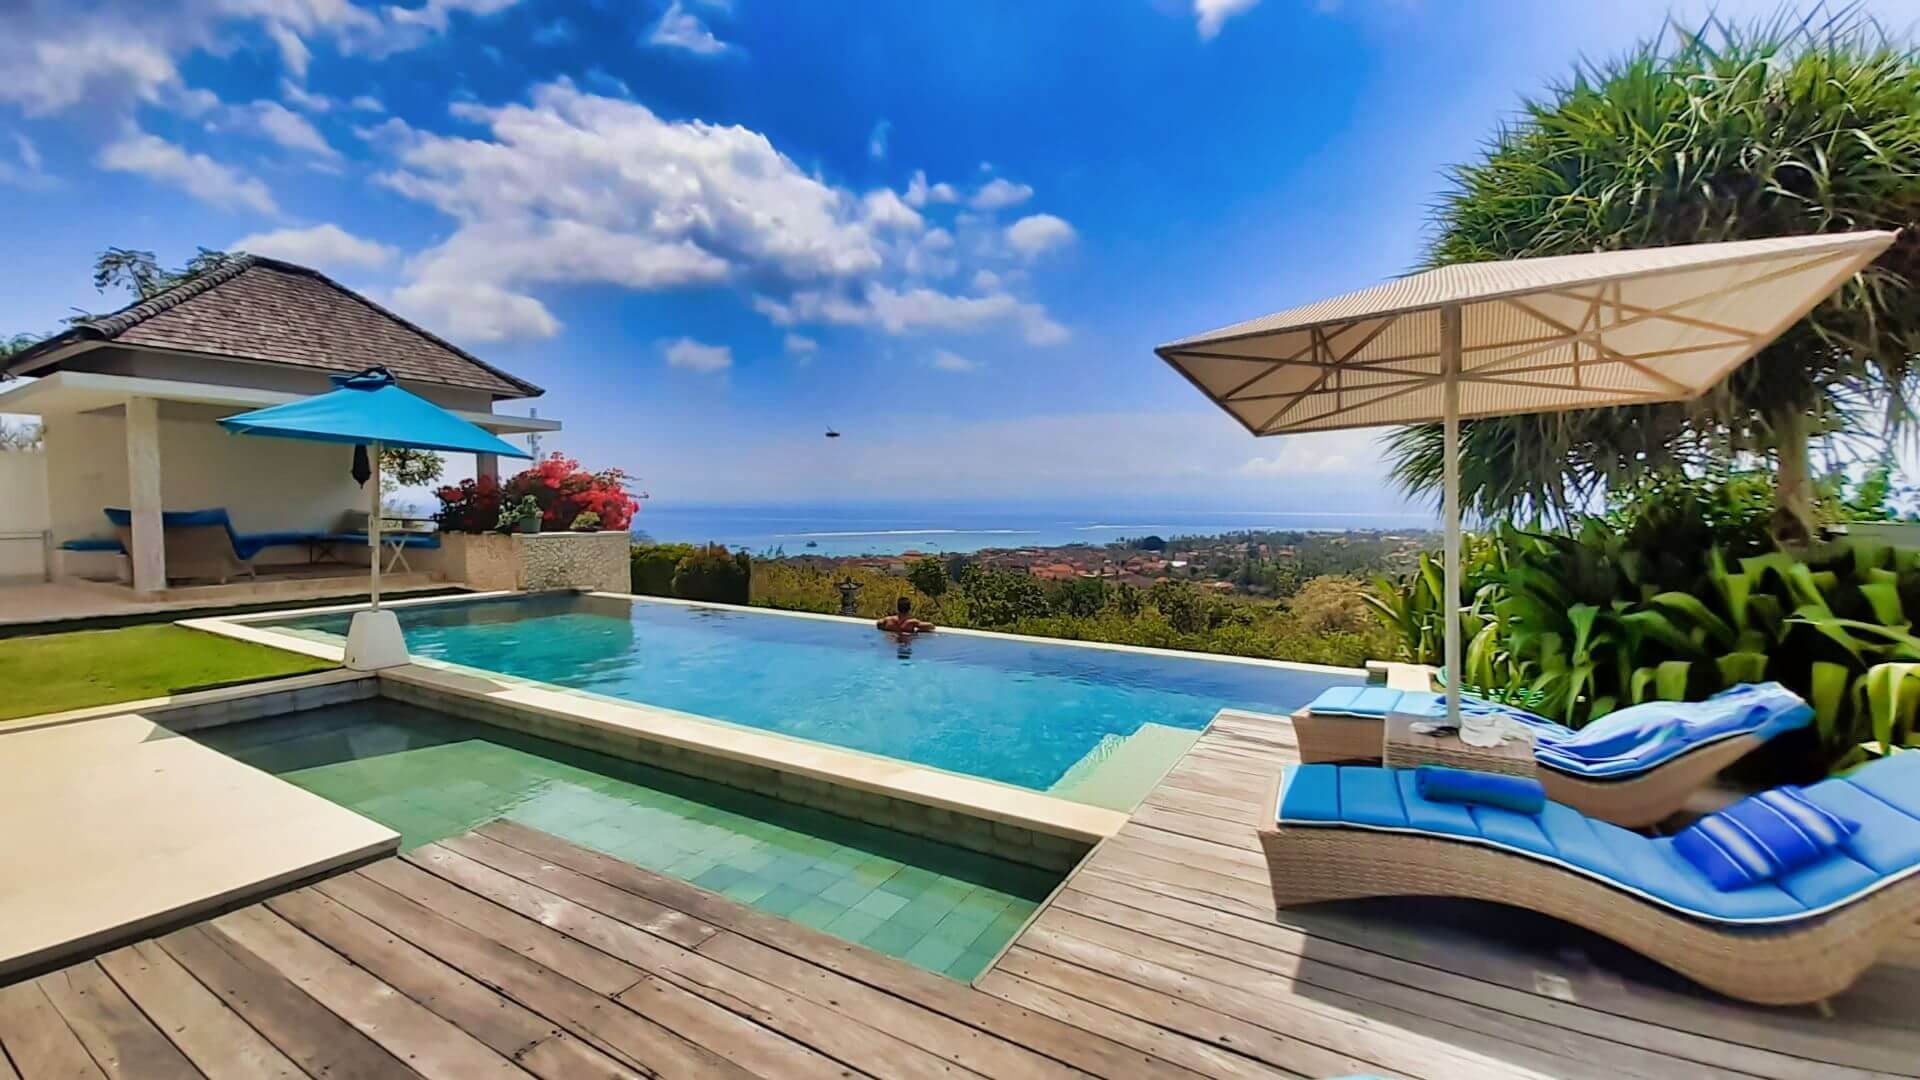 COVID-19 UPDATE - LOOKING ACROSS INFINITY POOL AND JUNGUT BATU BAY TO BALI FROM VILLA 353 DEGREES NORTH ON NUSA LEMBONGAN, BALI